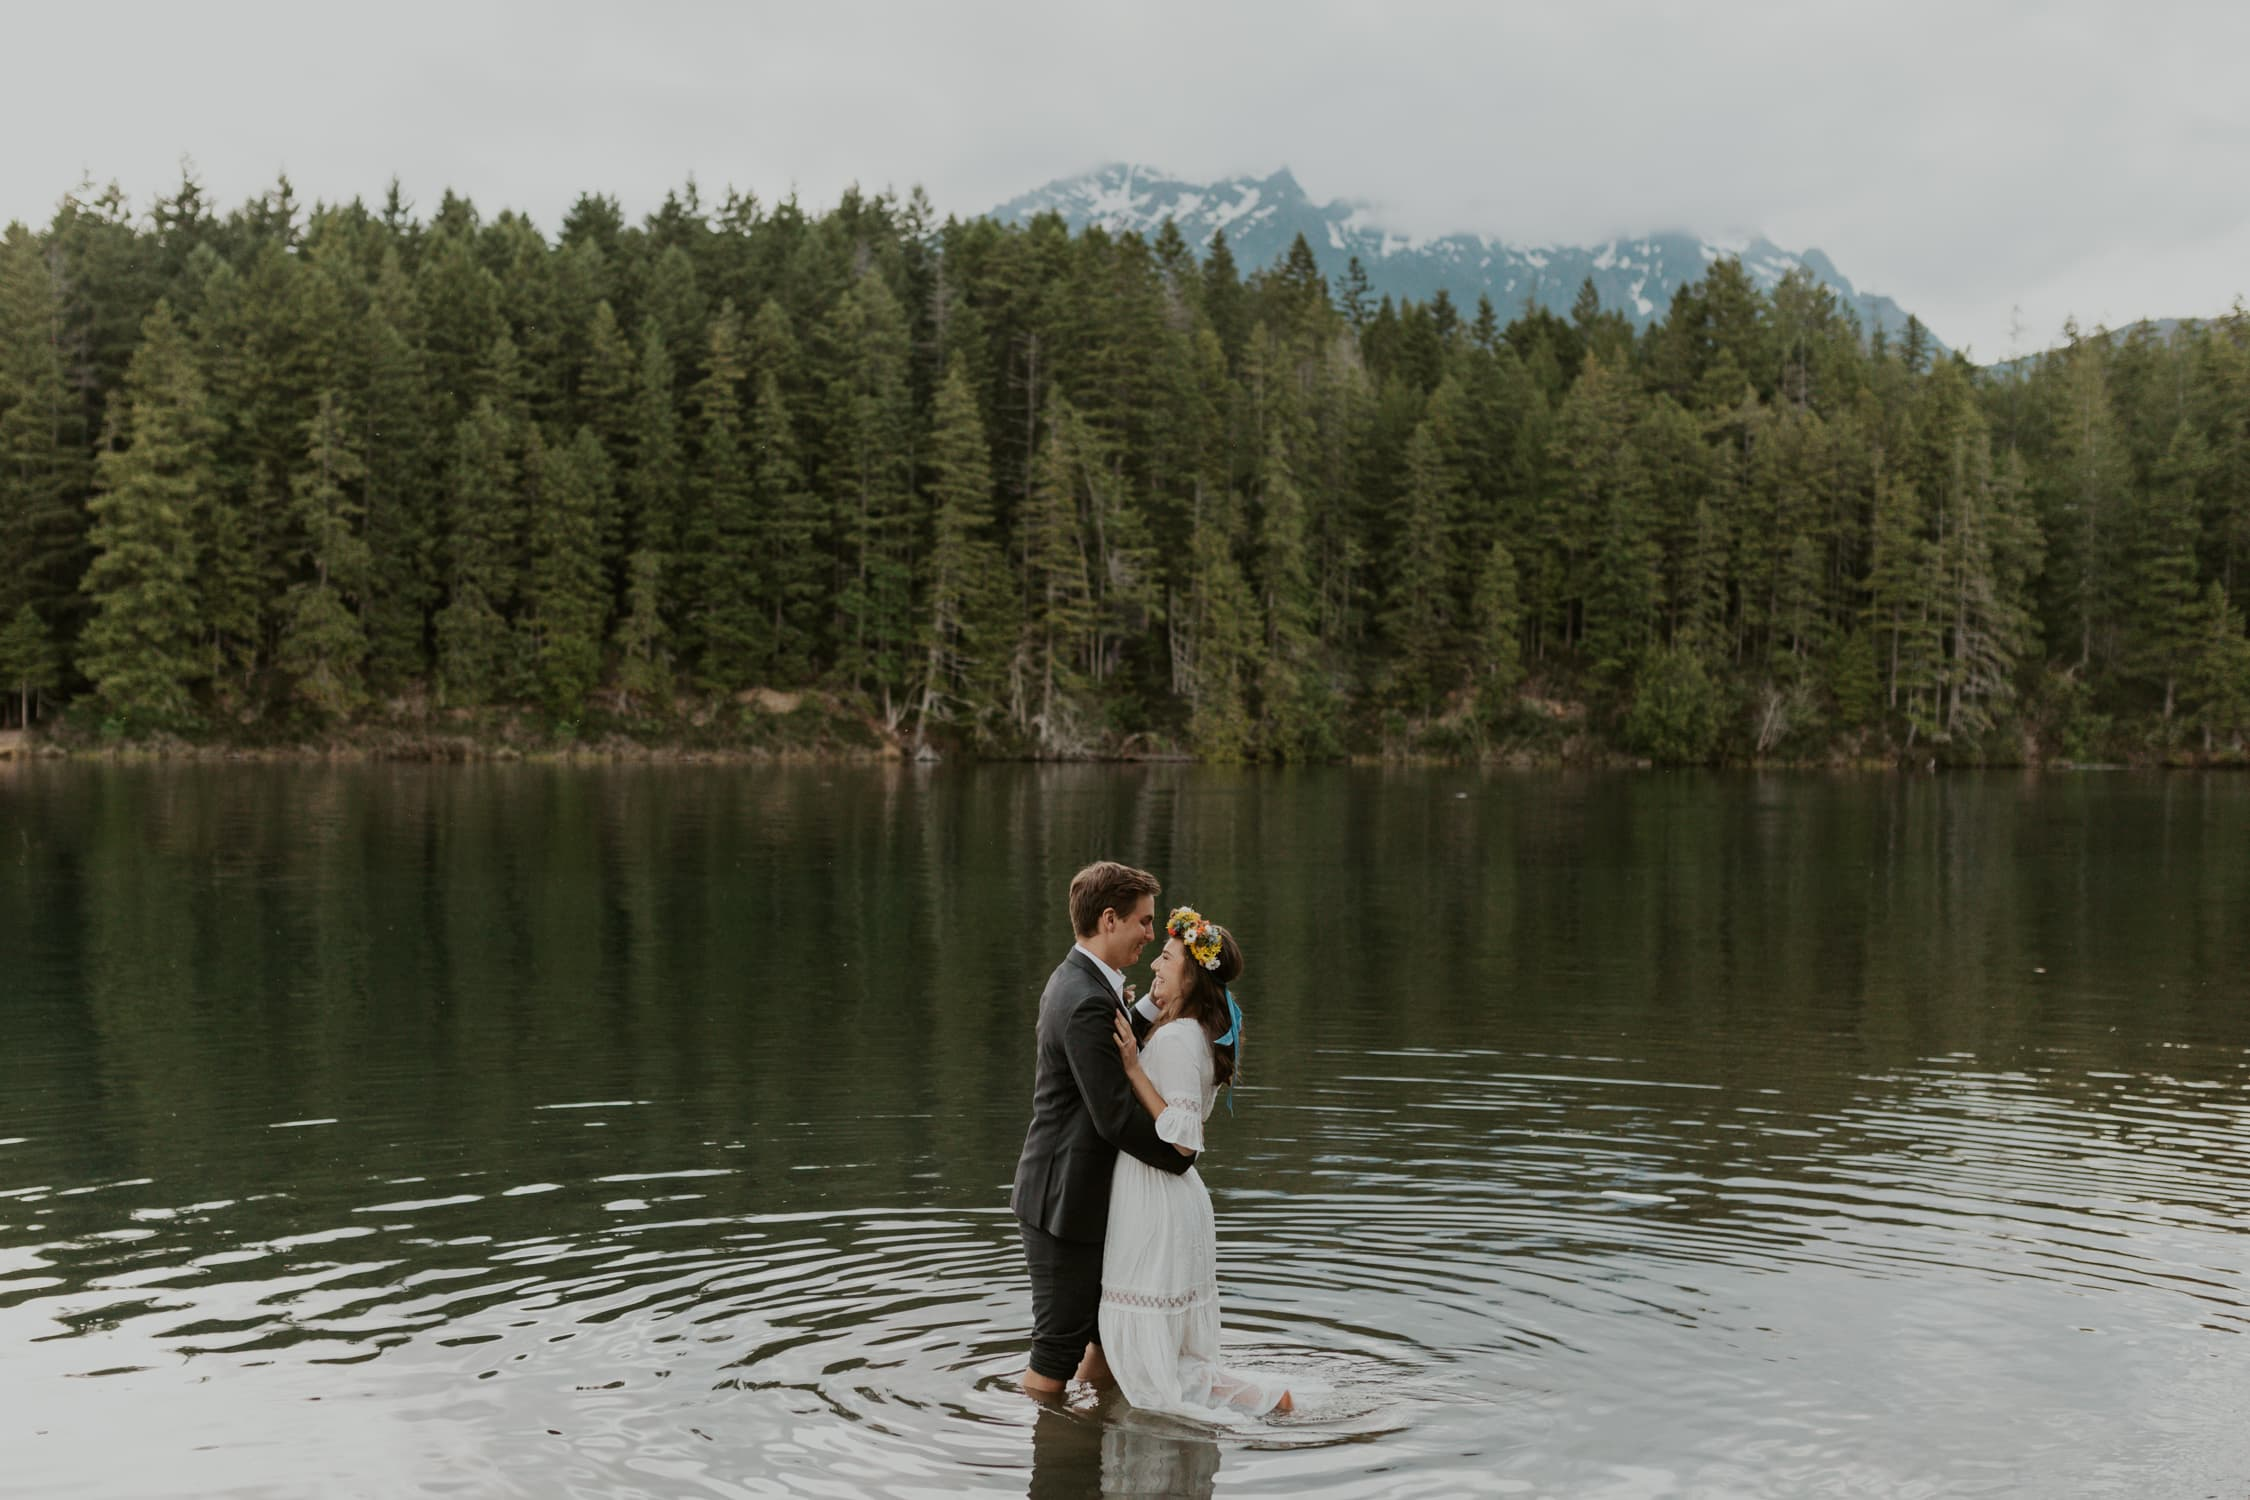 A couple laughing and playing in the water of Lake Cushman in Olympic National Park in Washington State.